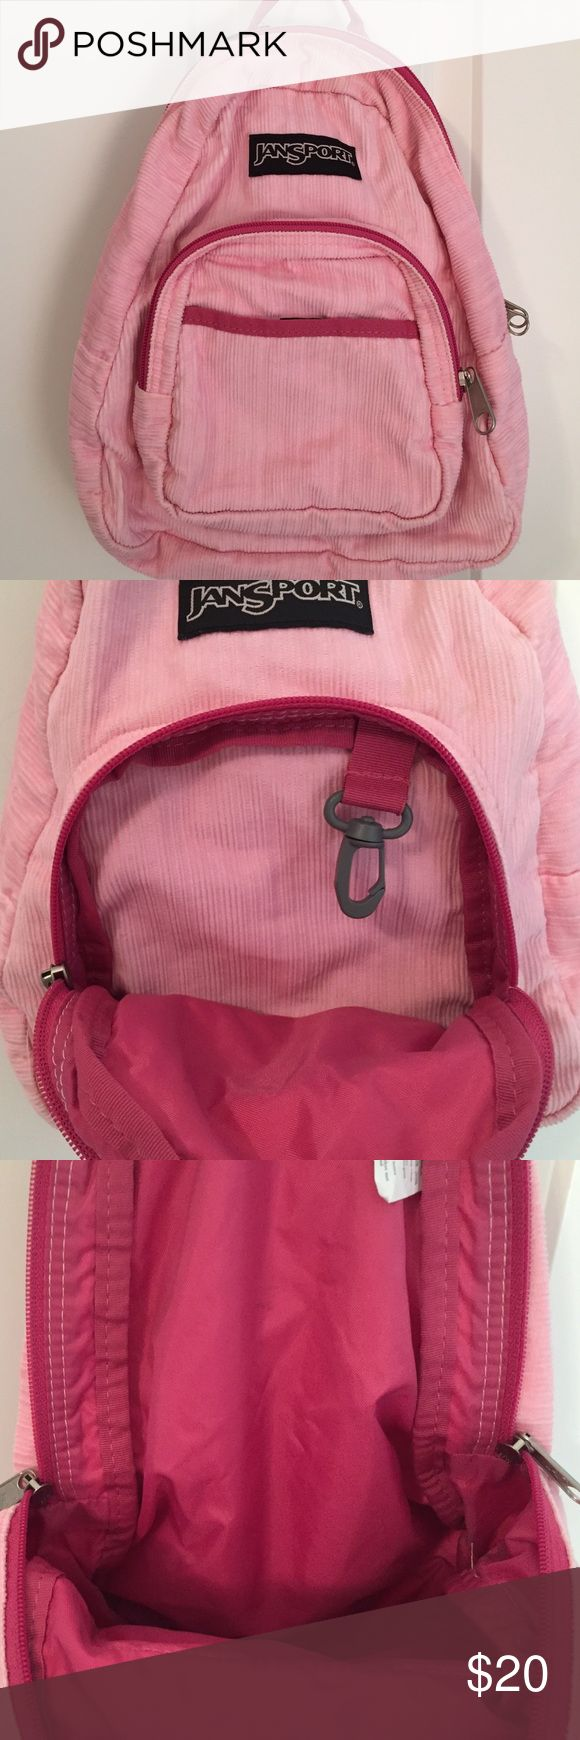 Mini Jansport Backpack Mini light and dark pink Jansport backpack! Great for hikes and outdoor activities. Small enough to carry big enough to hold your things! Jansport Bags Backpacks